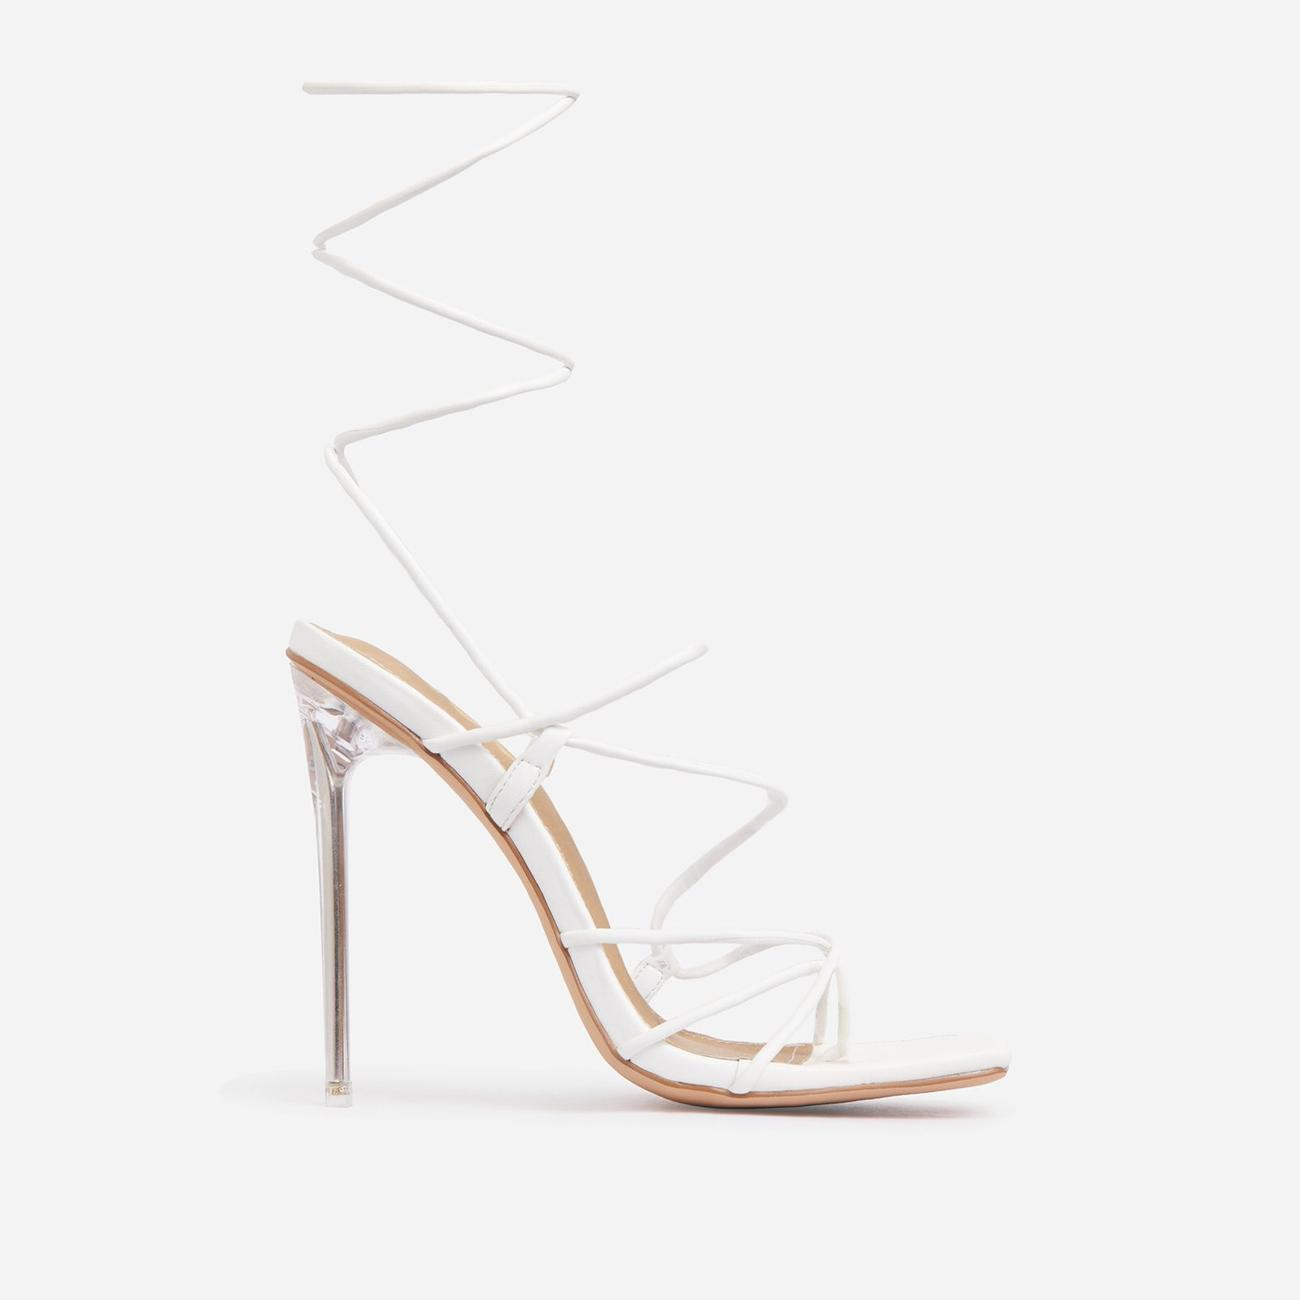 Sunbathe Square Toe Lace Up Clear Perspex Heel In White Faux Leather Image 1